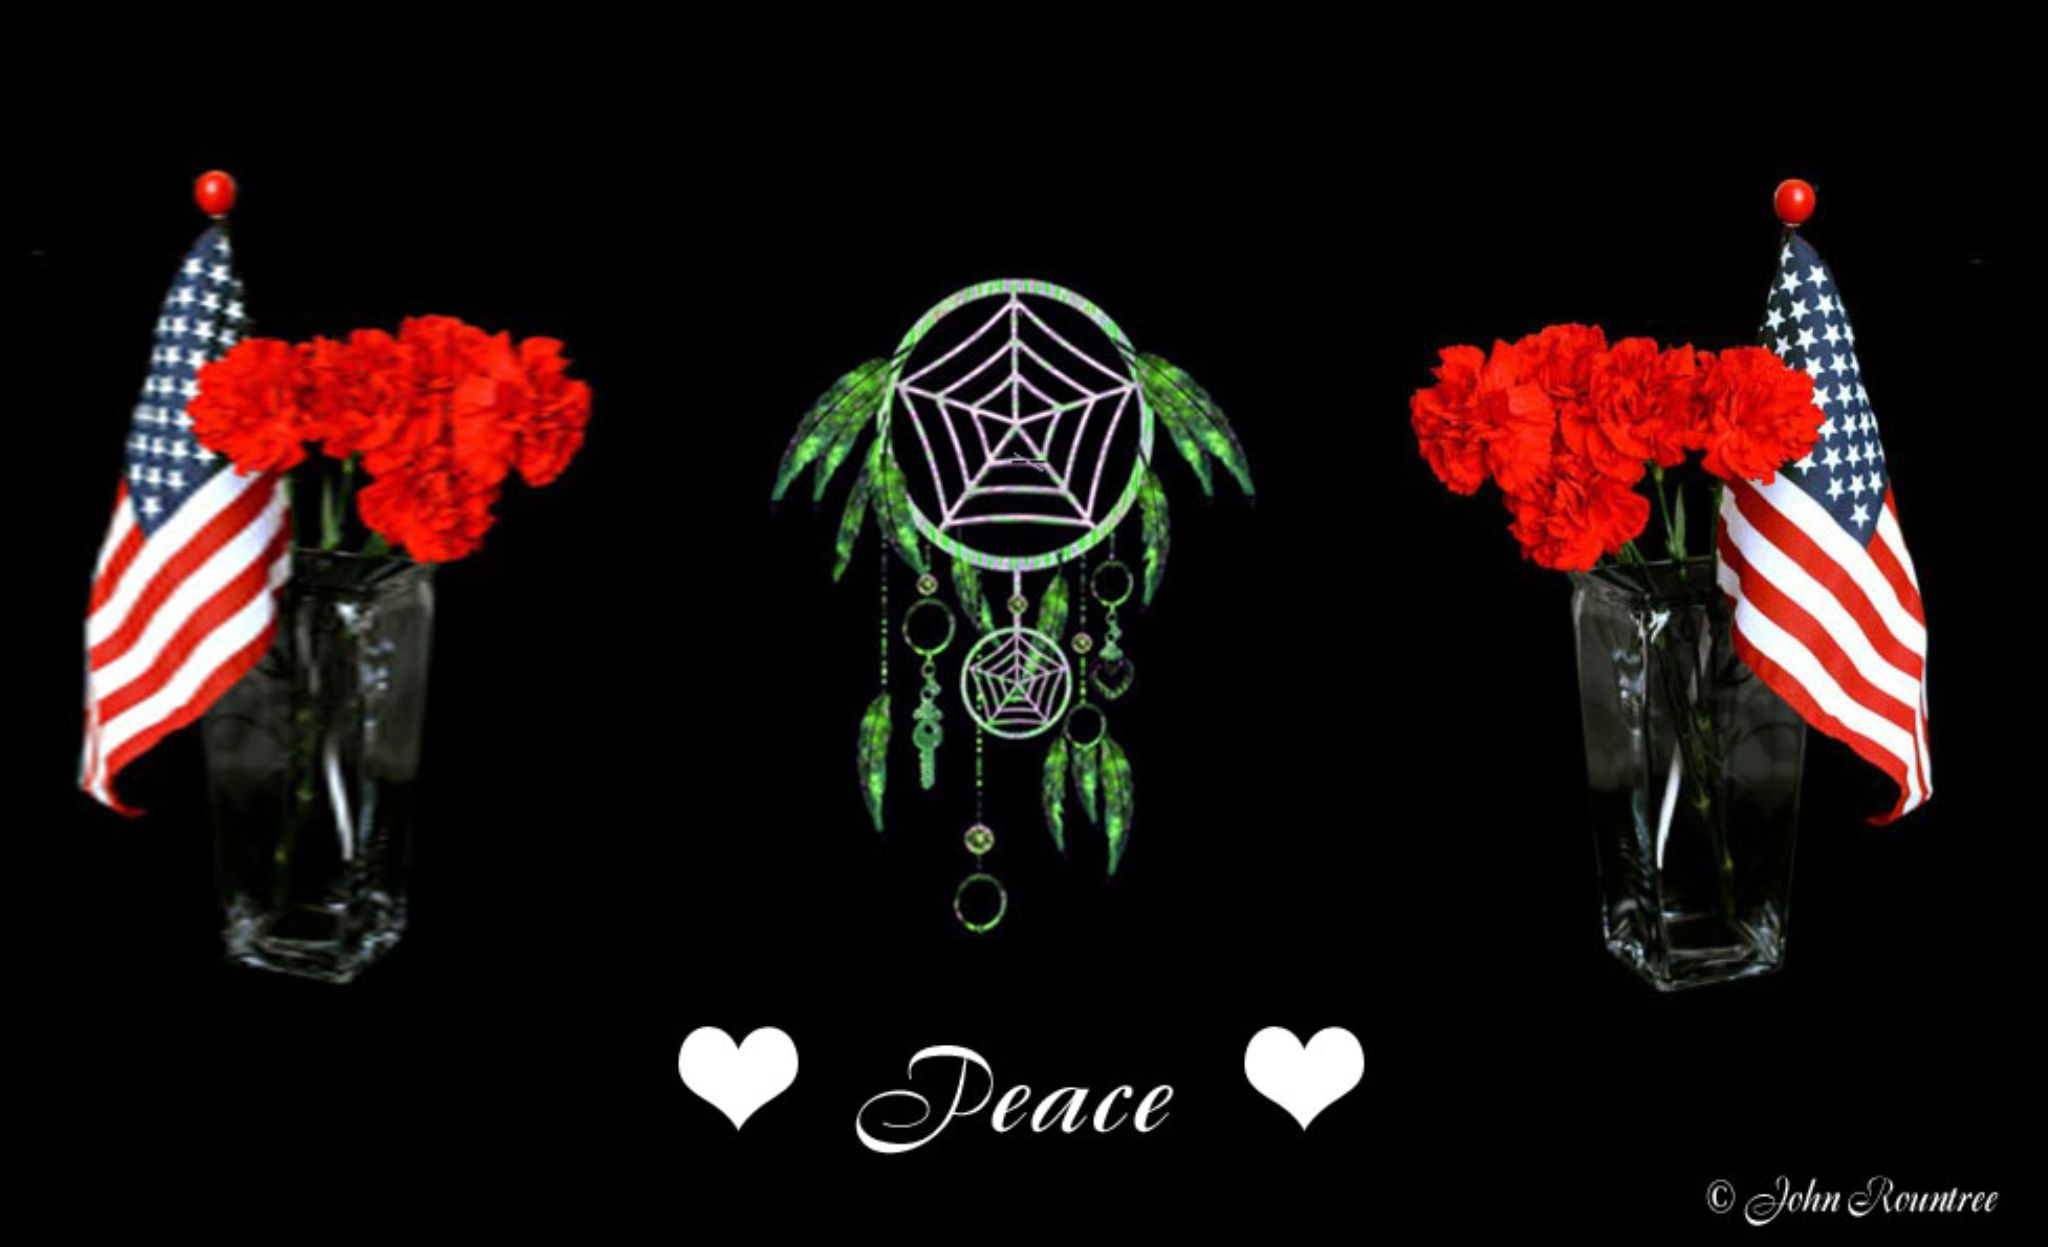 PEACE  by johnny